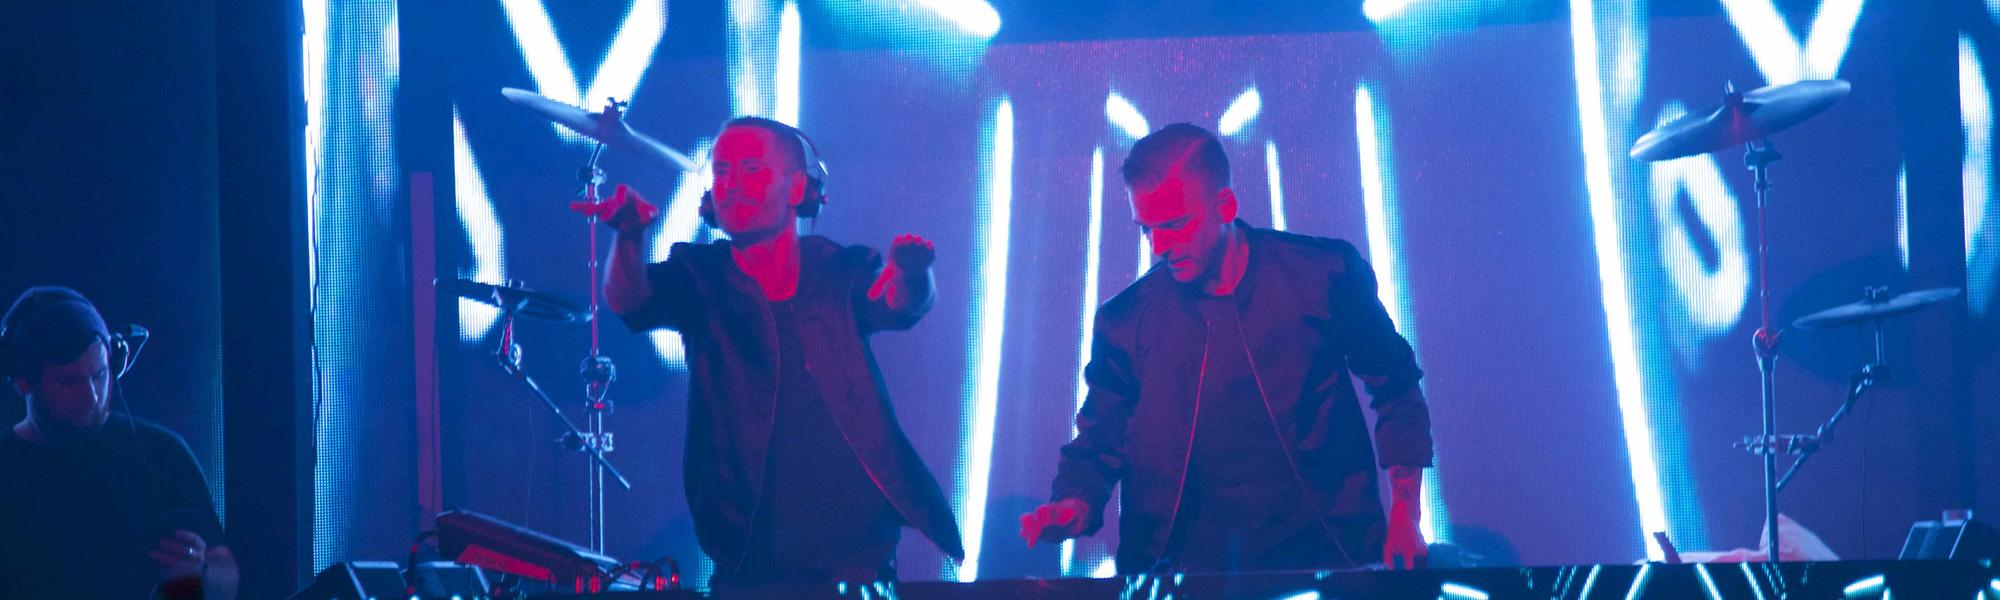 Here's Everything That Goes Into Producing a Galantis Performance at One of Las Vegas' Mega-Clubs